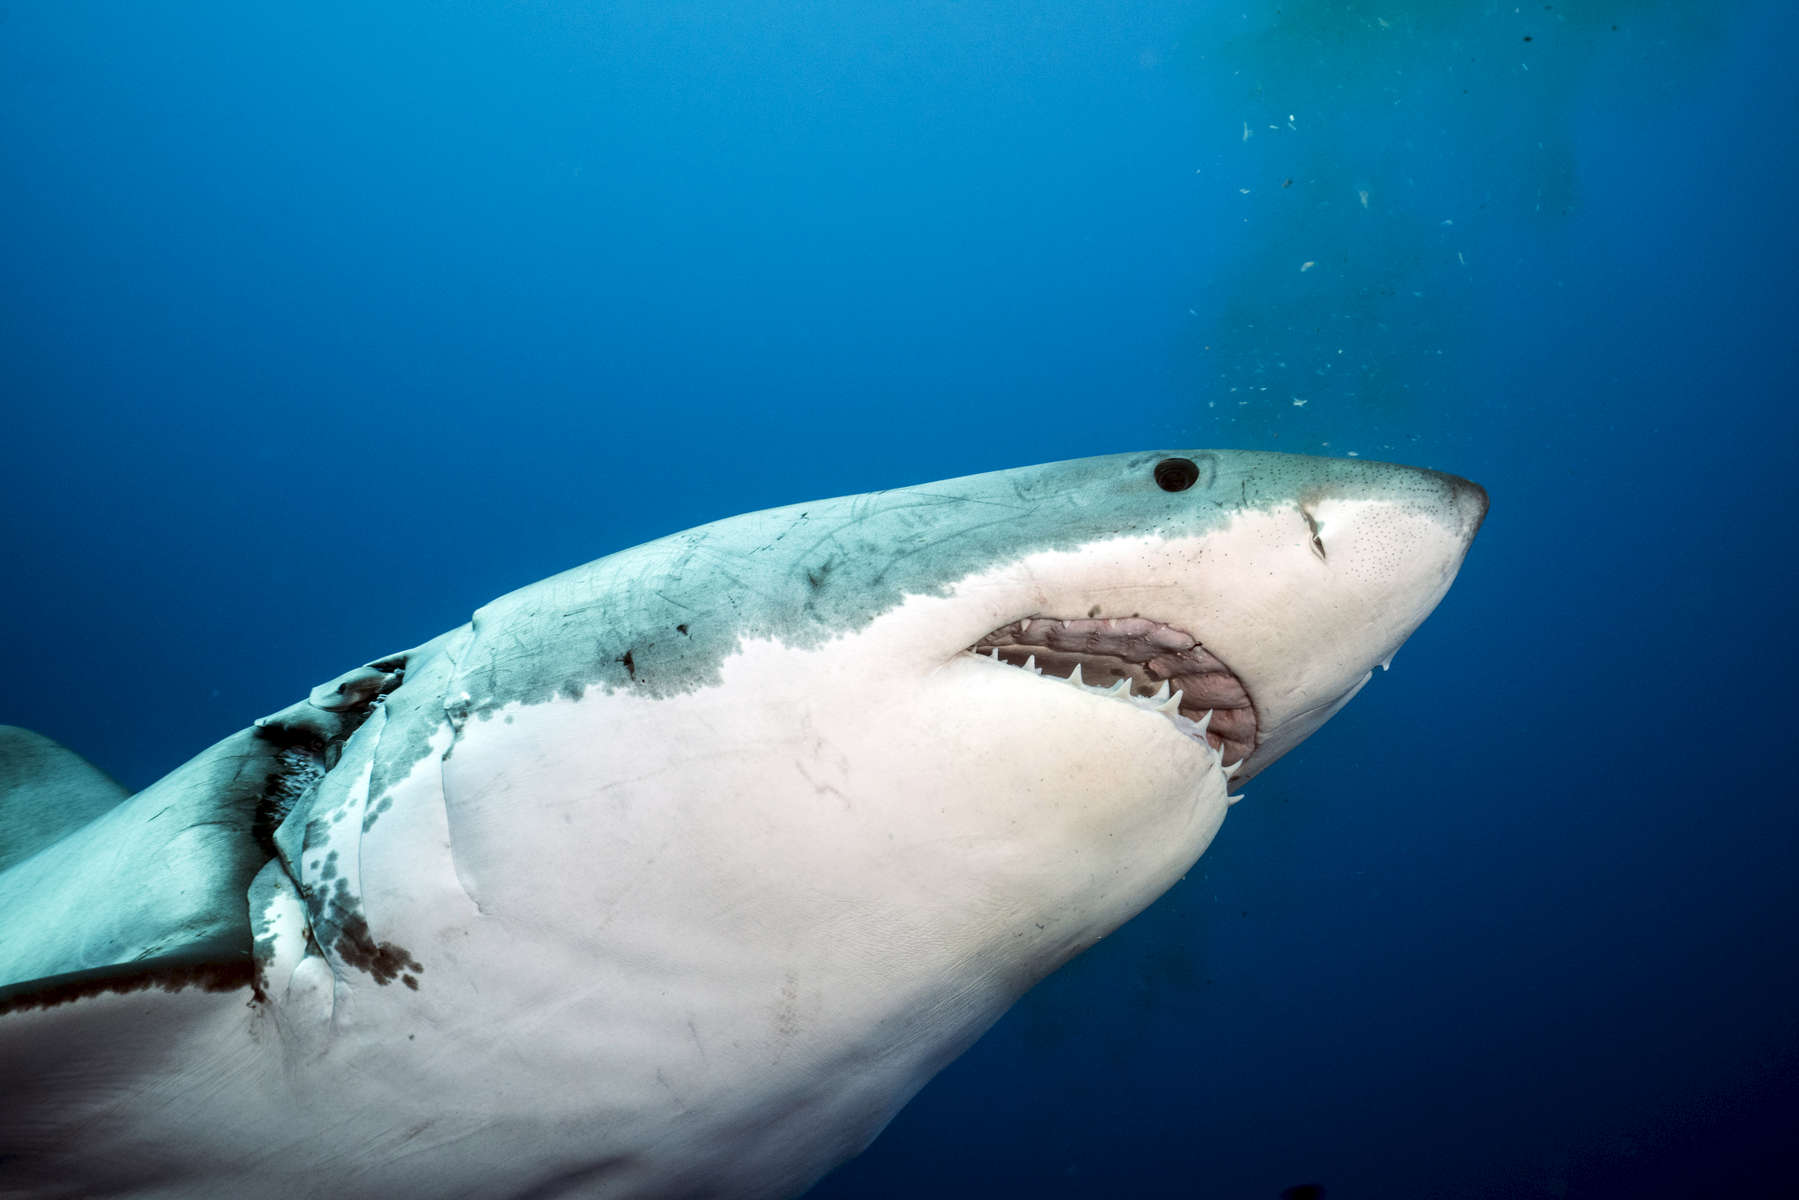 Isla Guadalupe, Mexico - November 11, 2015: A female great white, wounded during a violent mating session, swims past. The isolated waters off the coast of the volcanic Mexican Island of Isla Guadalupe, long a destination for fur hunters and sports fishermen, has long attracted a seasonal migration of great white sharks. The presence of a population of sharks is so consistent that in recent years the island has become a mecca for shark diving tourism.(Photograph by Benjamin Lowy for The New York Times)